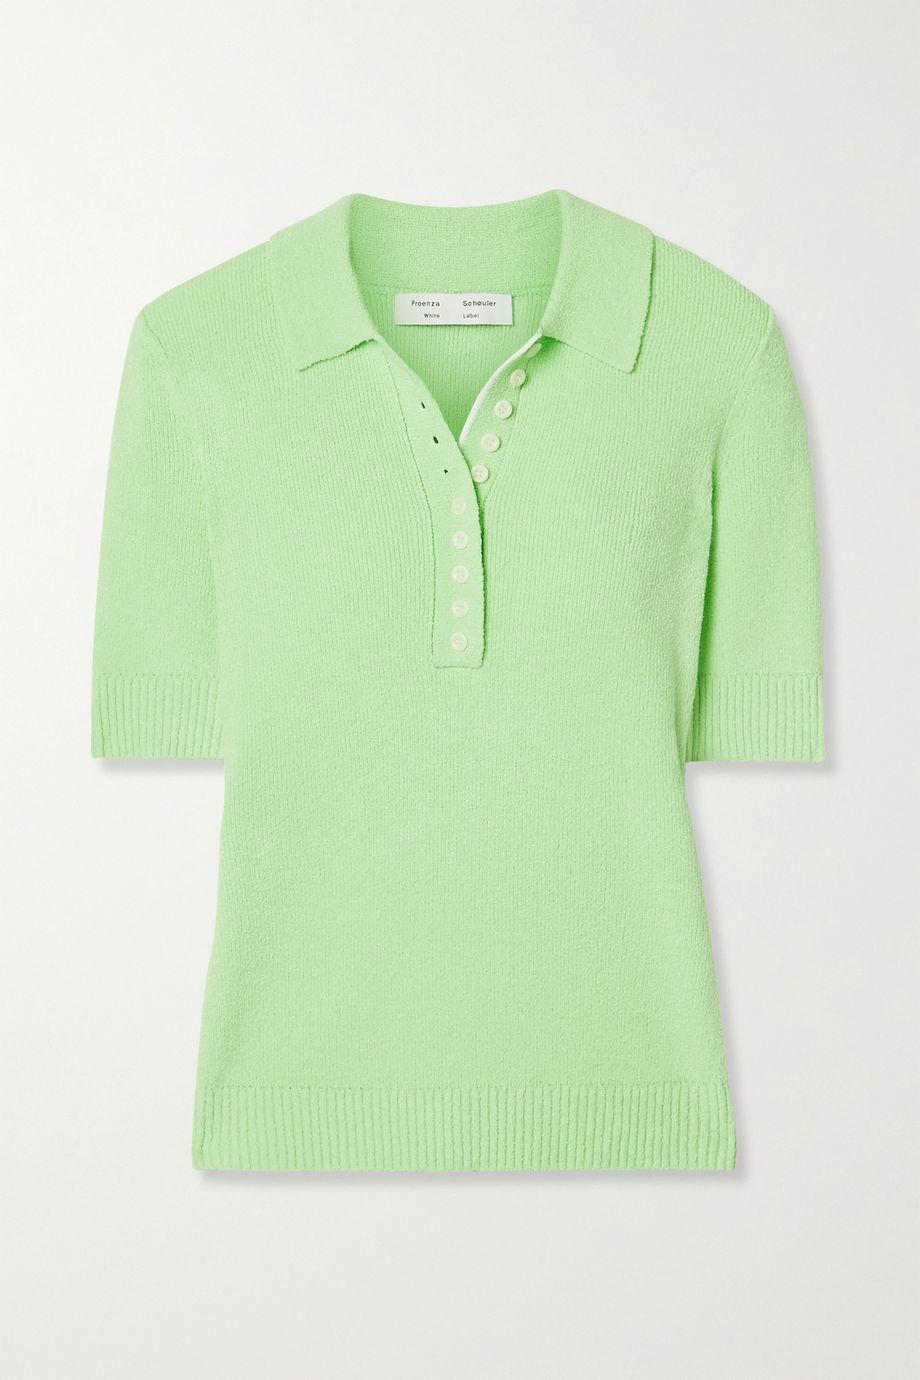 Proenza Schouler White Label Ribbed-knit polo shirt